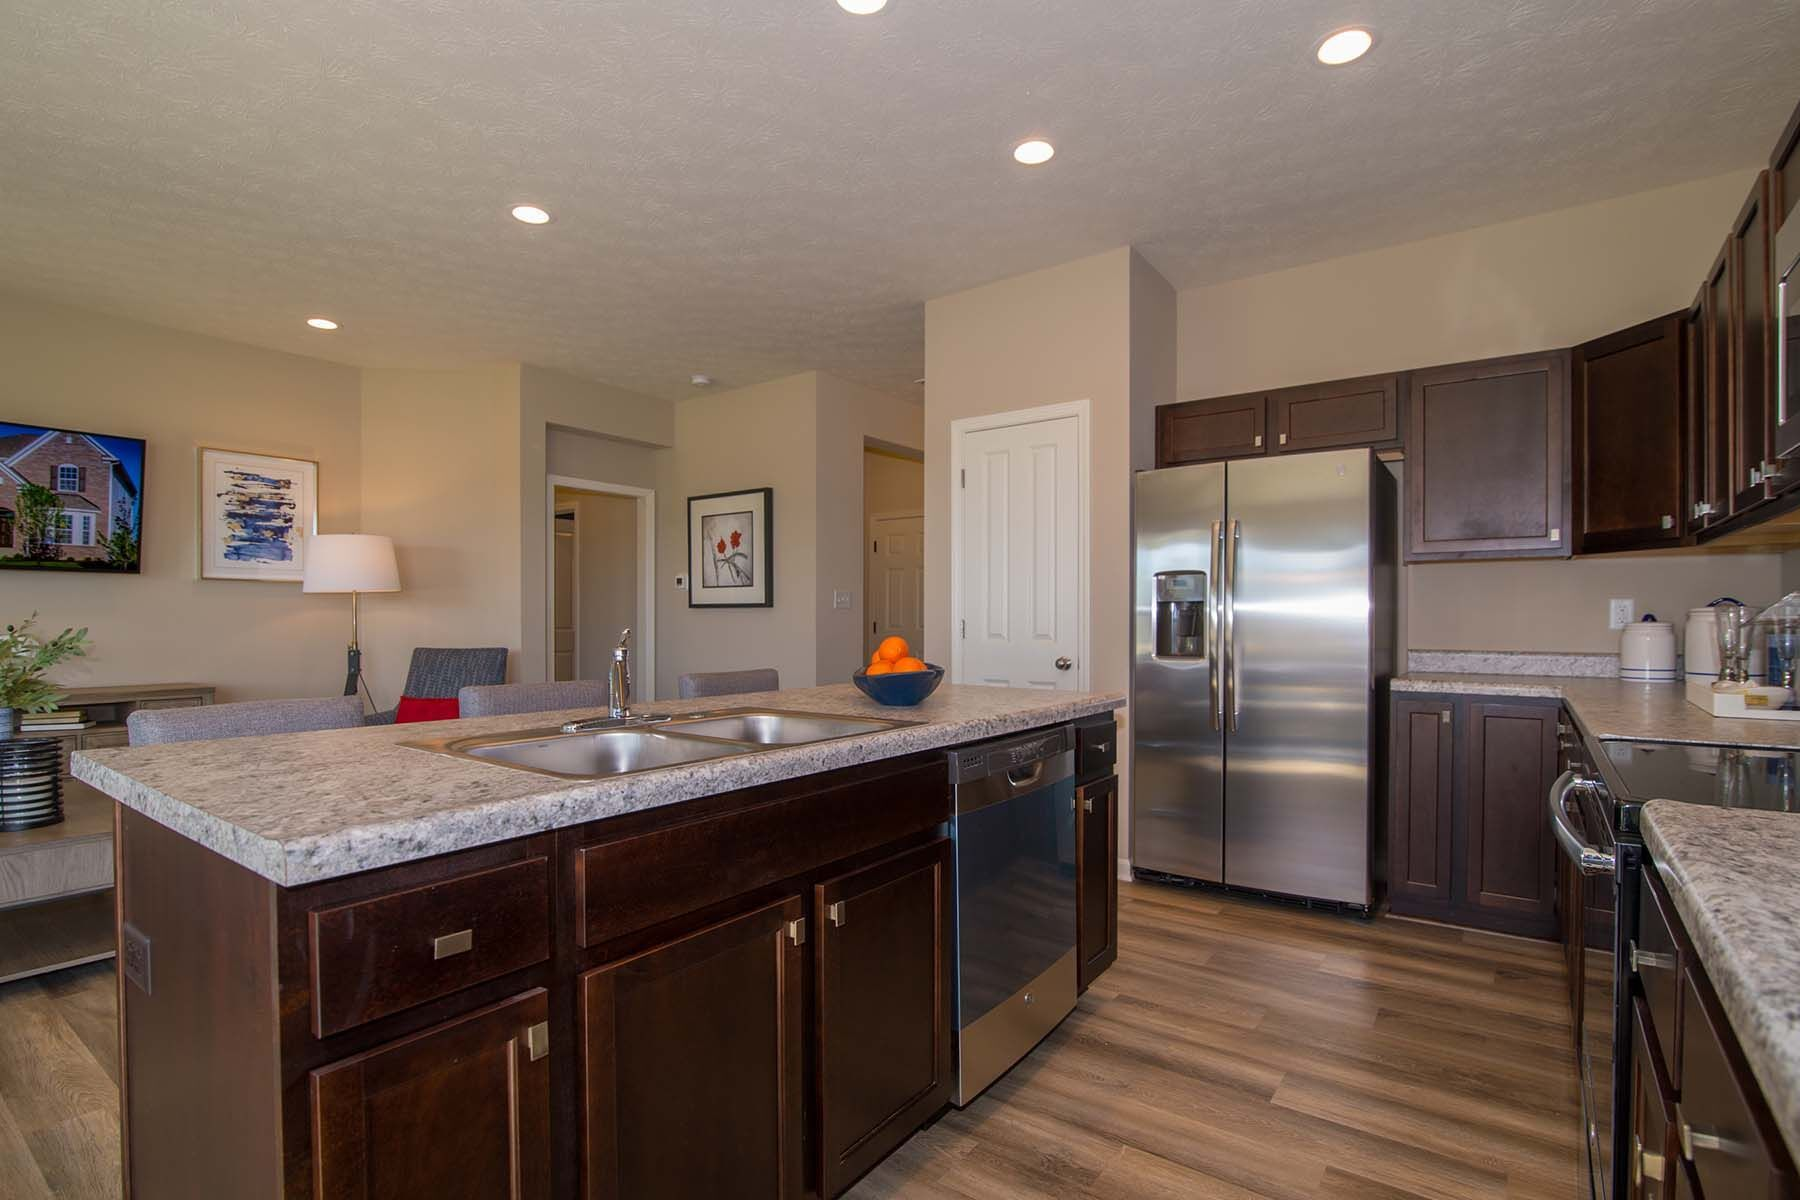 Kitchen featured in the Bella Vista By M/I Homes in Indianapolis, IN